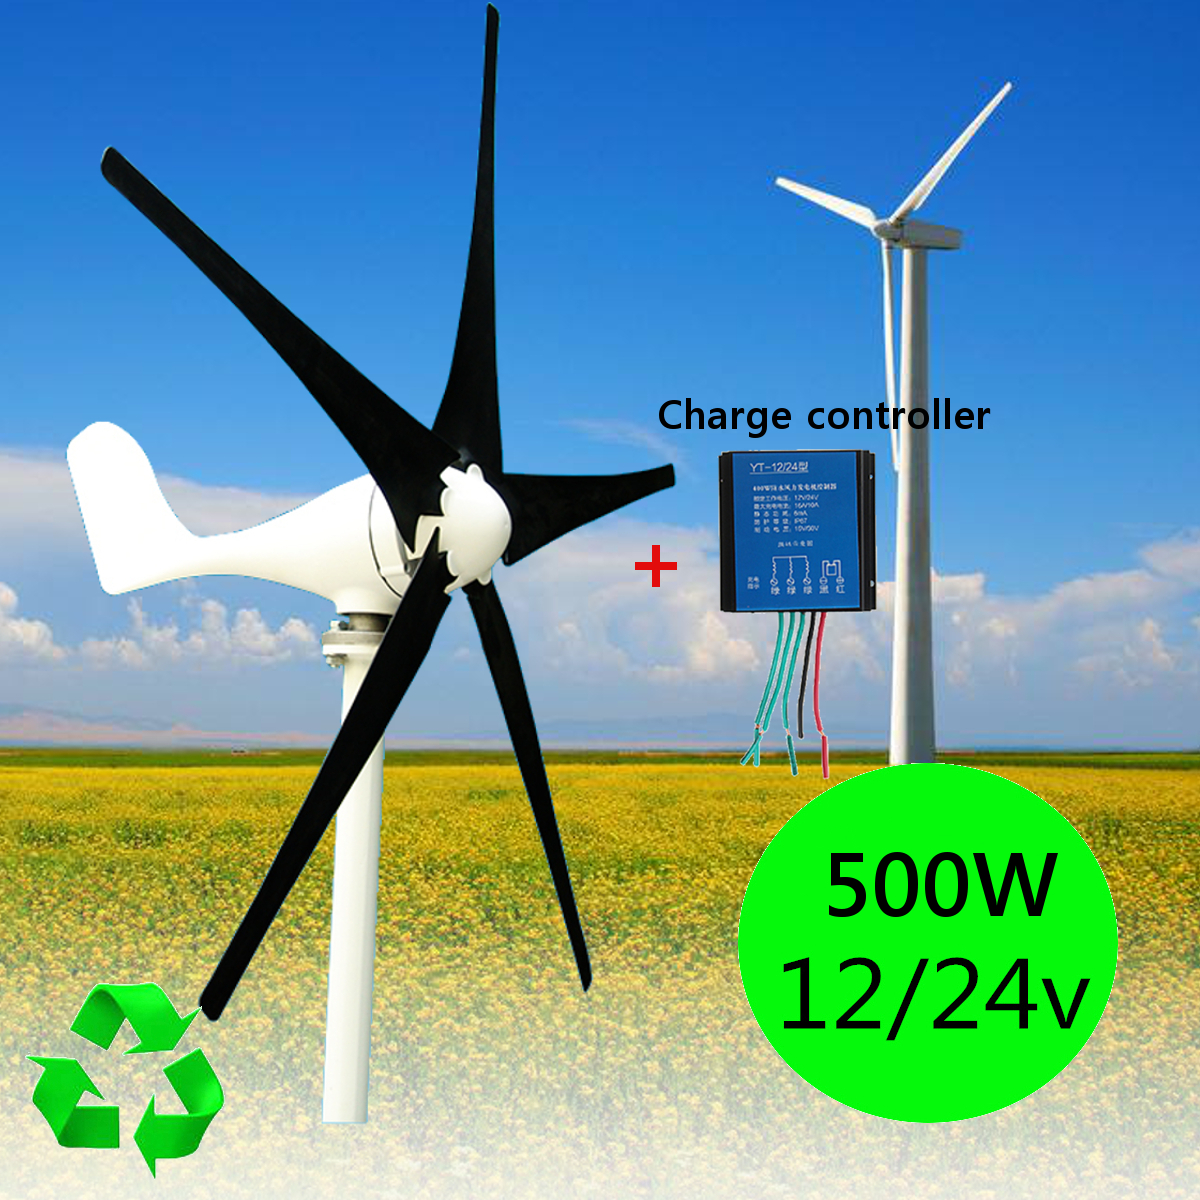 Max 600W Wind Turbine Generator DC 12V 24V with 5 Blade Windmill + Charge Controller